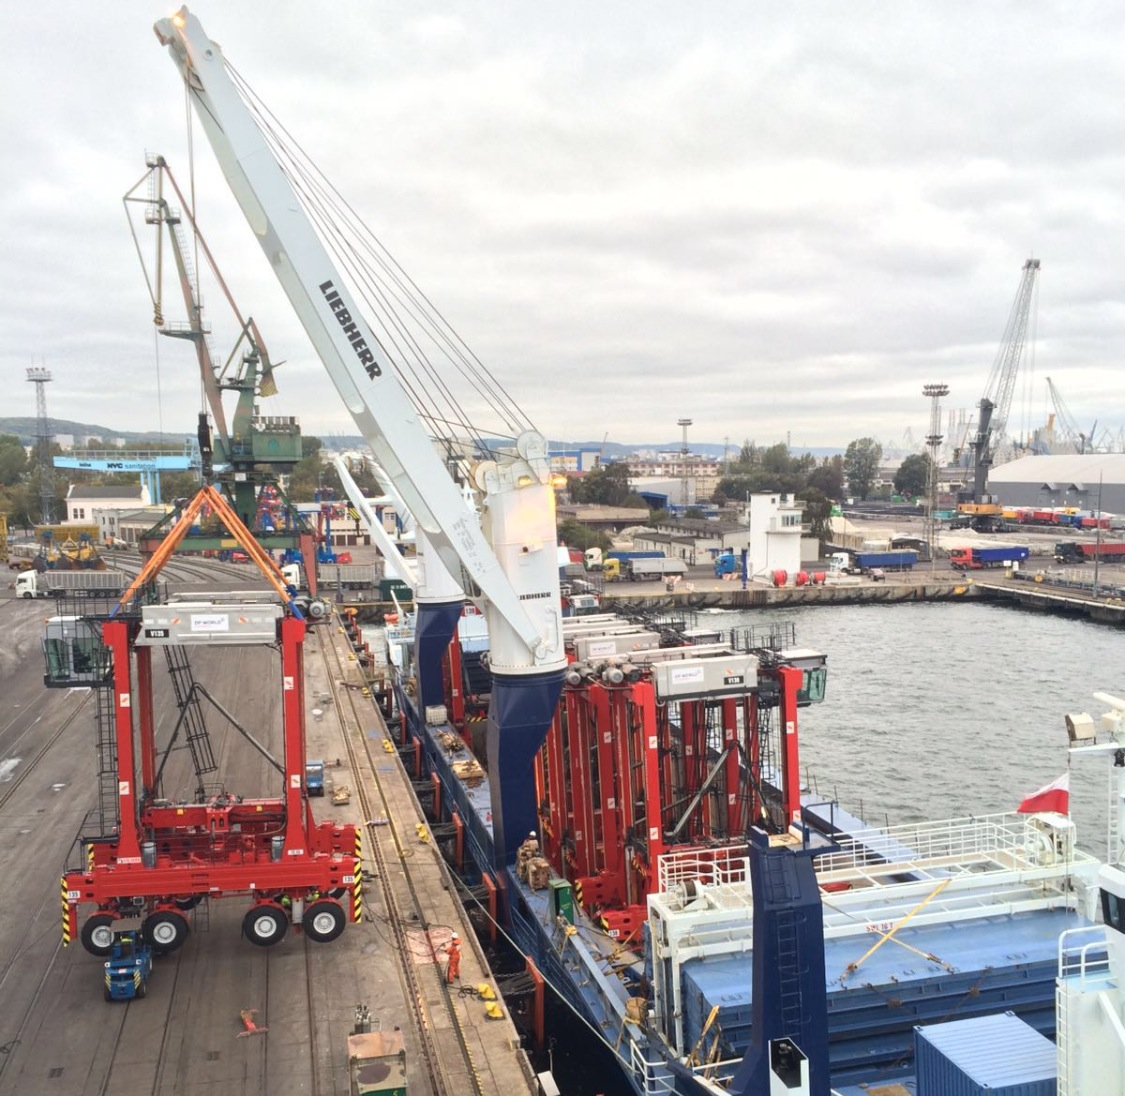 85 tons heavy Straddle Carriers